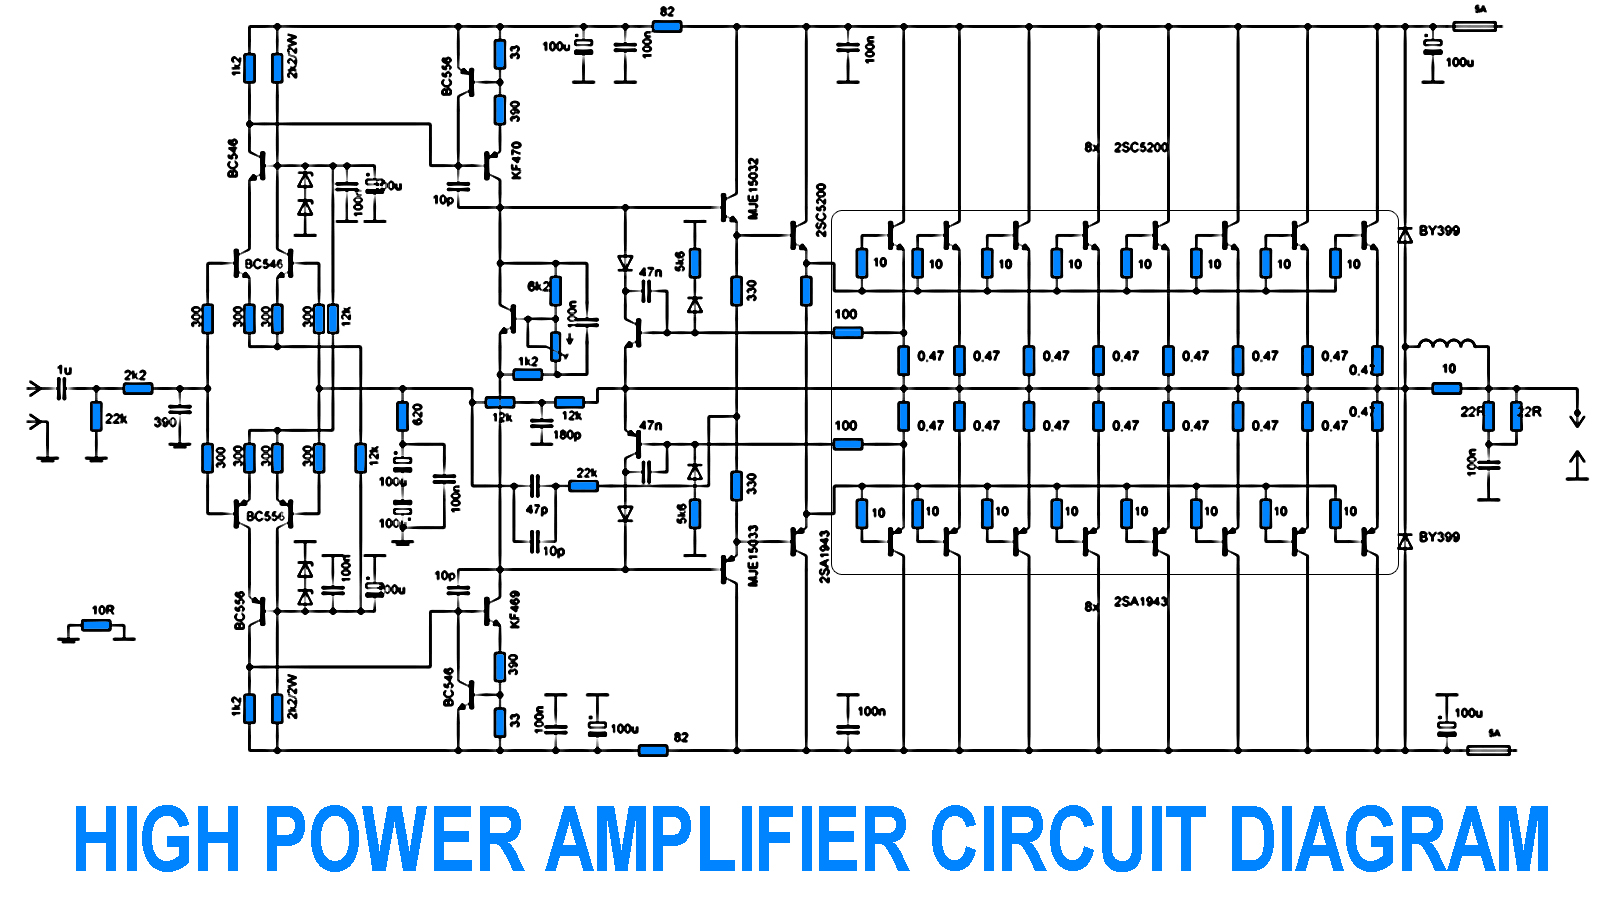 dj circuit diagrm amplifier ic motorcycle schematic dj circuit diagrm amplifier ic 700w power amplifier 2sc5200 2sa1943 dj circuit diagrm